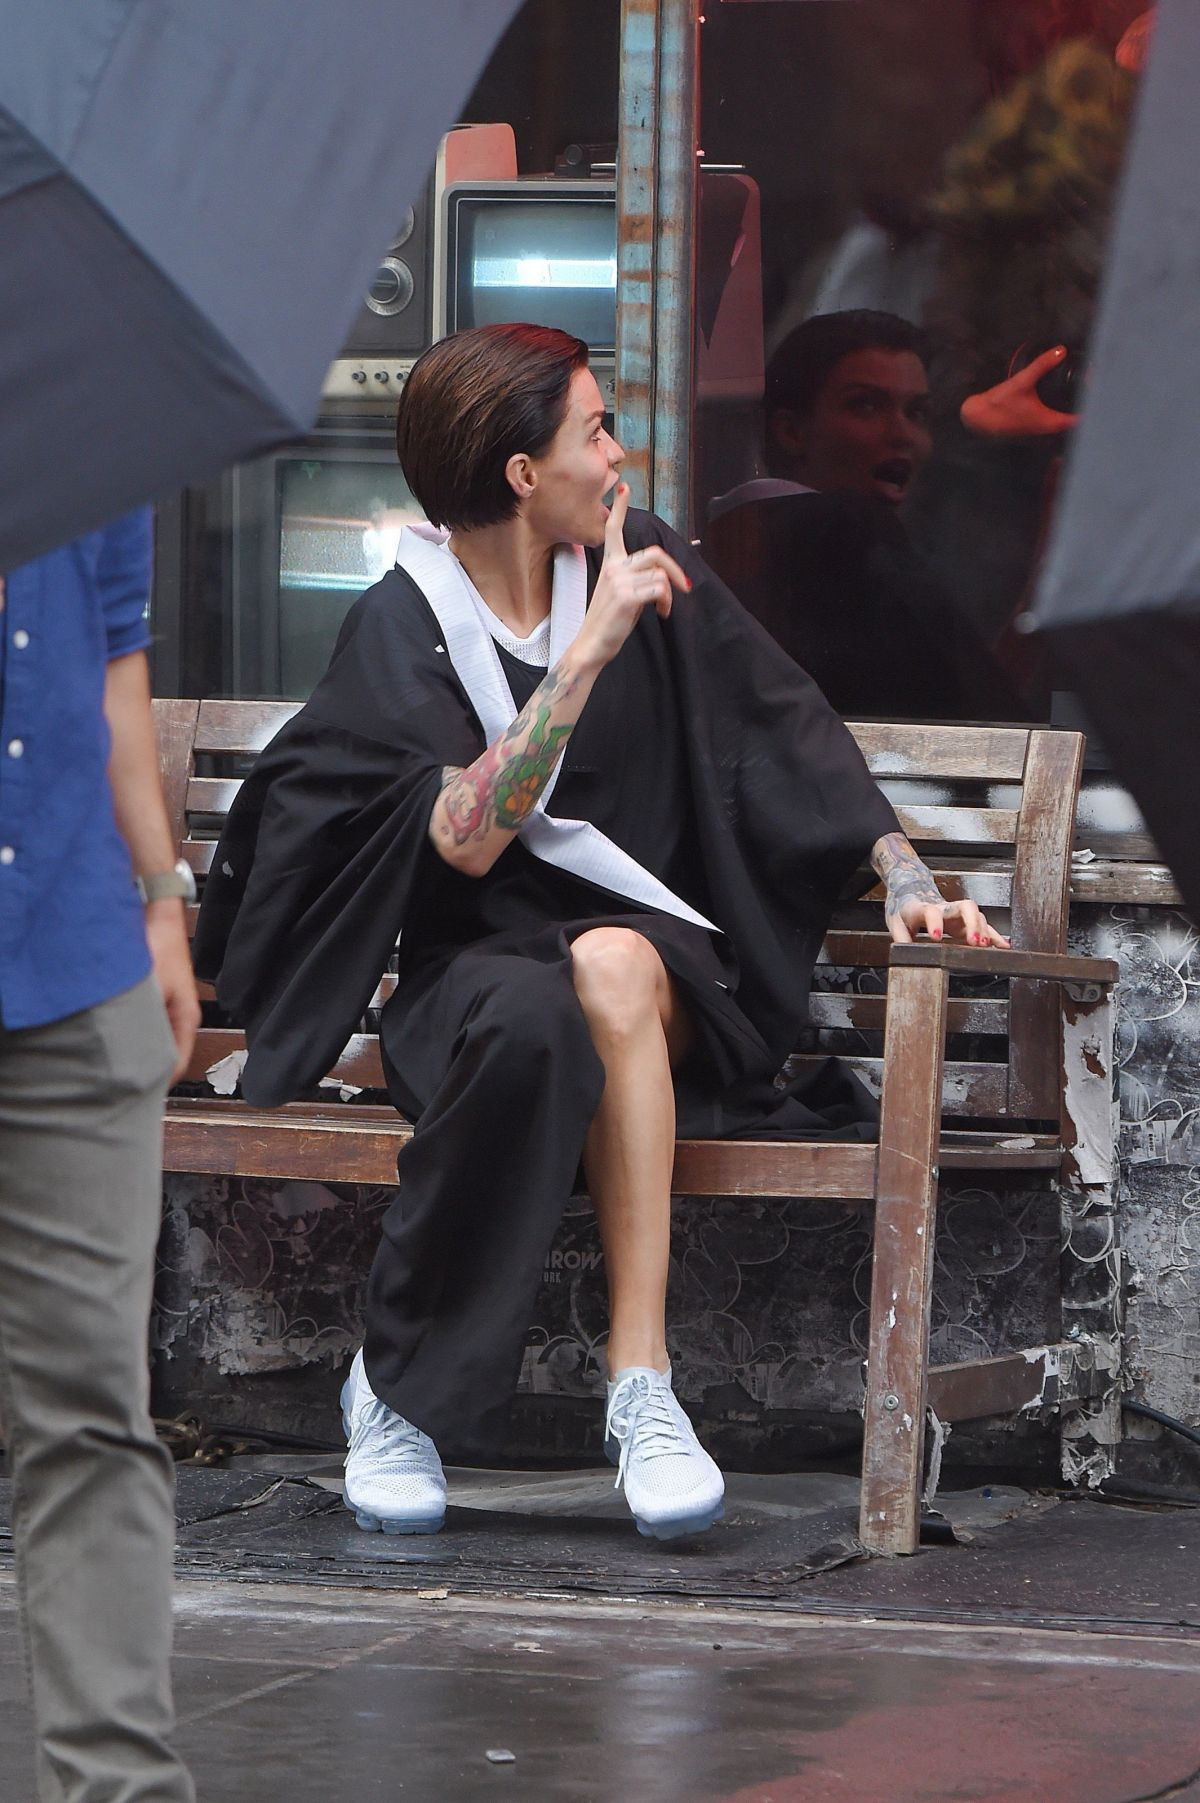 Ruby Rose On The Set Of A Photoshoot In New York 03 01